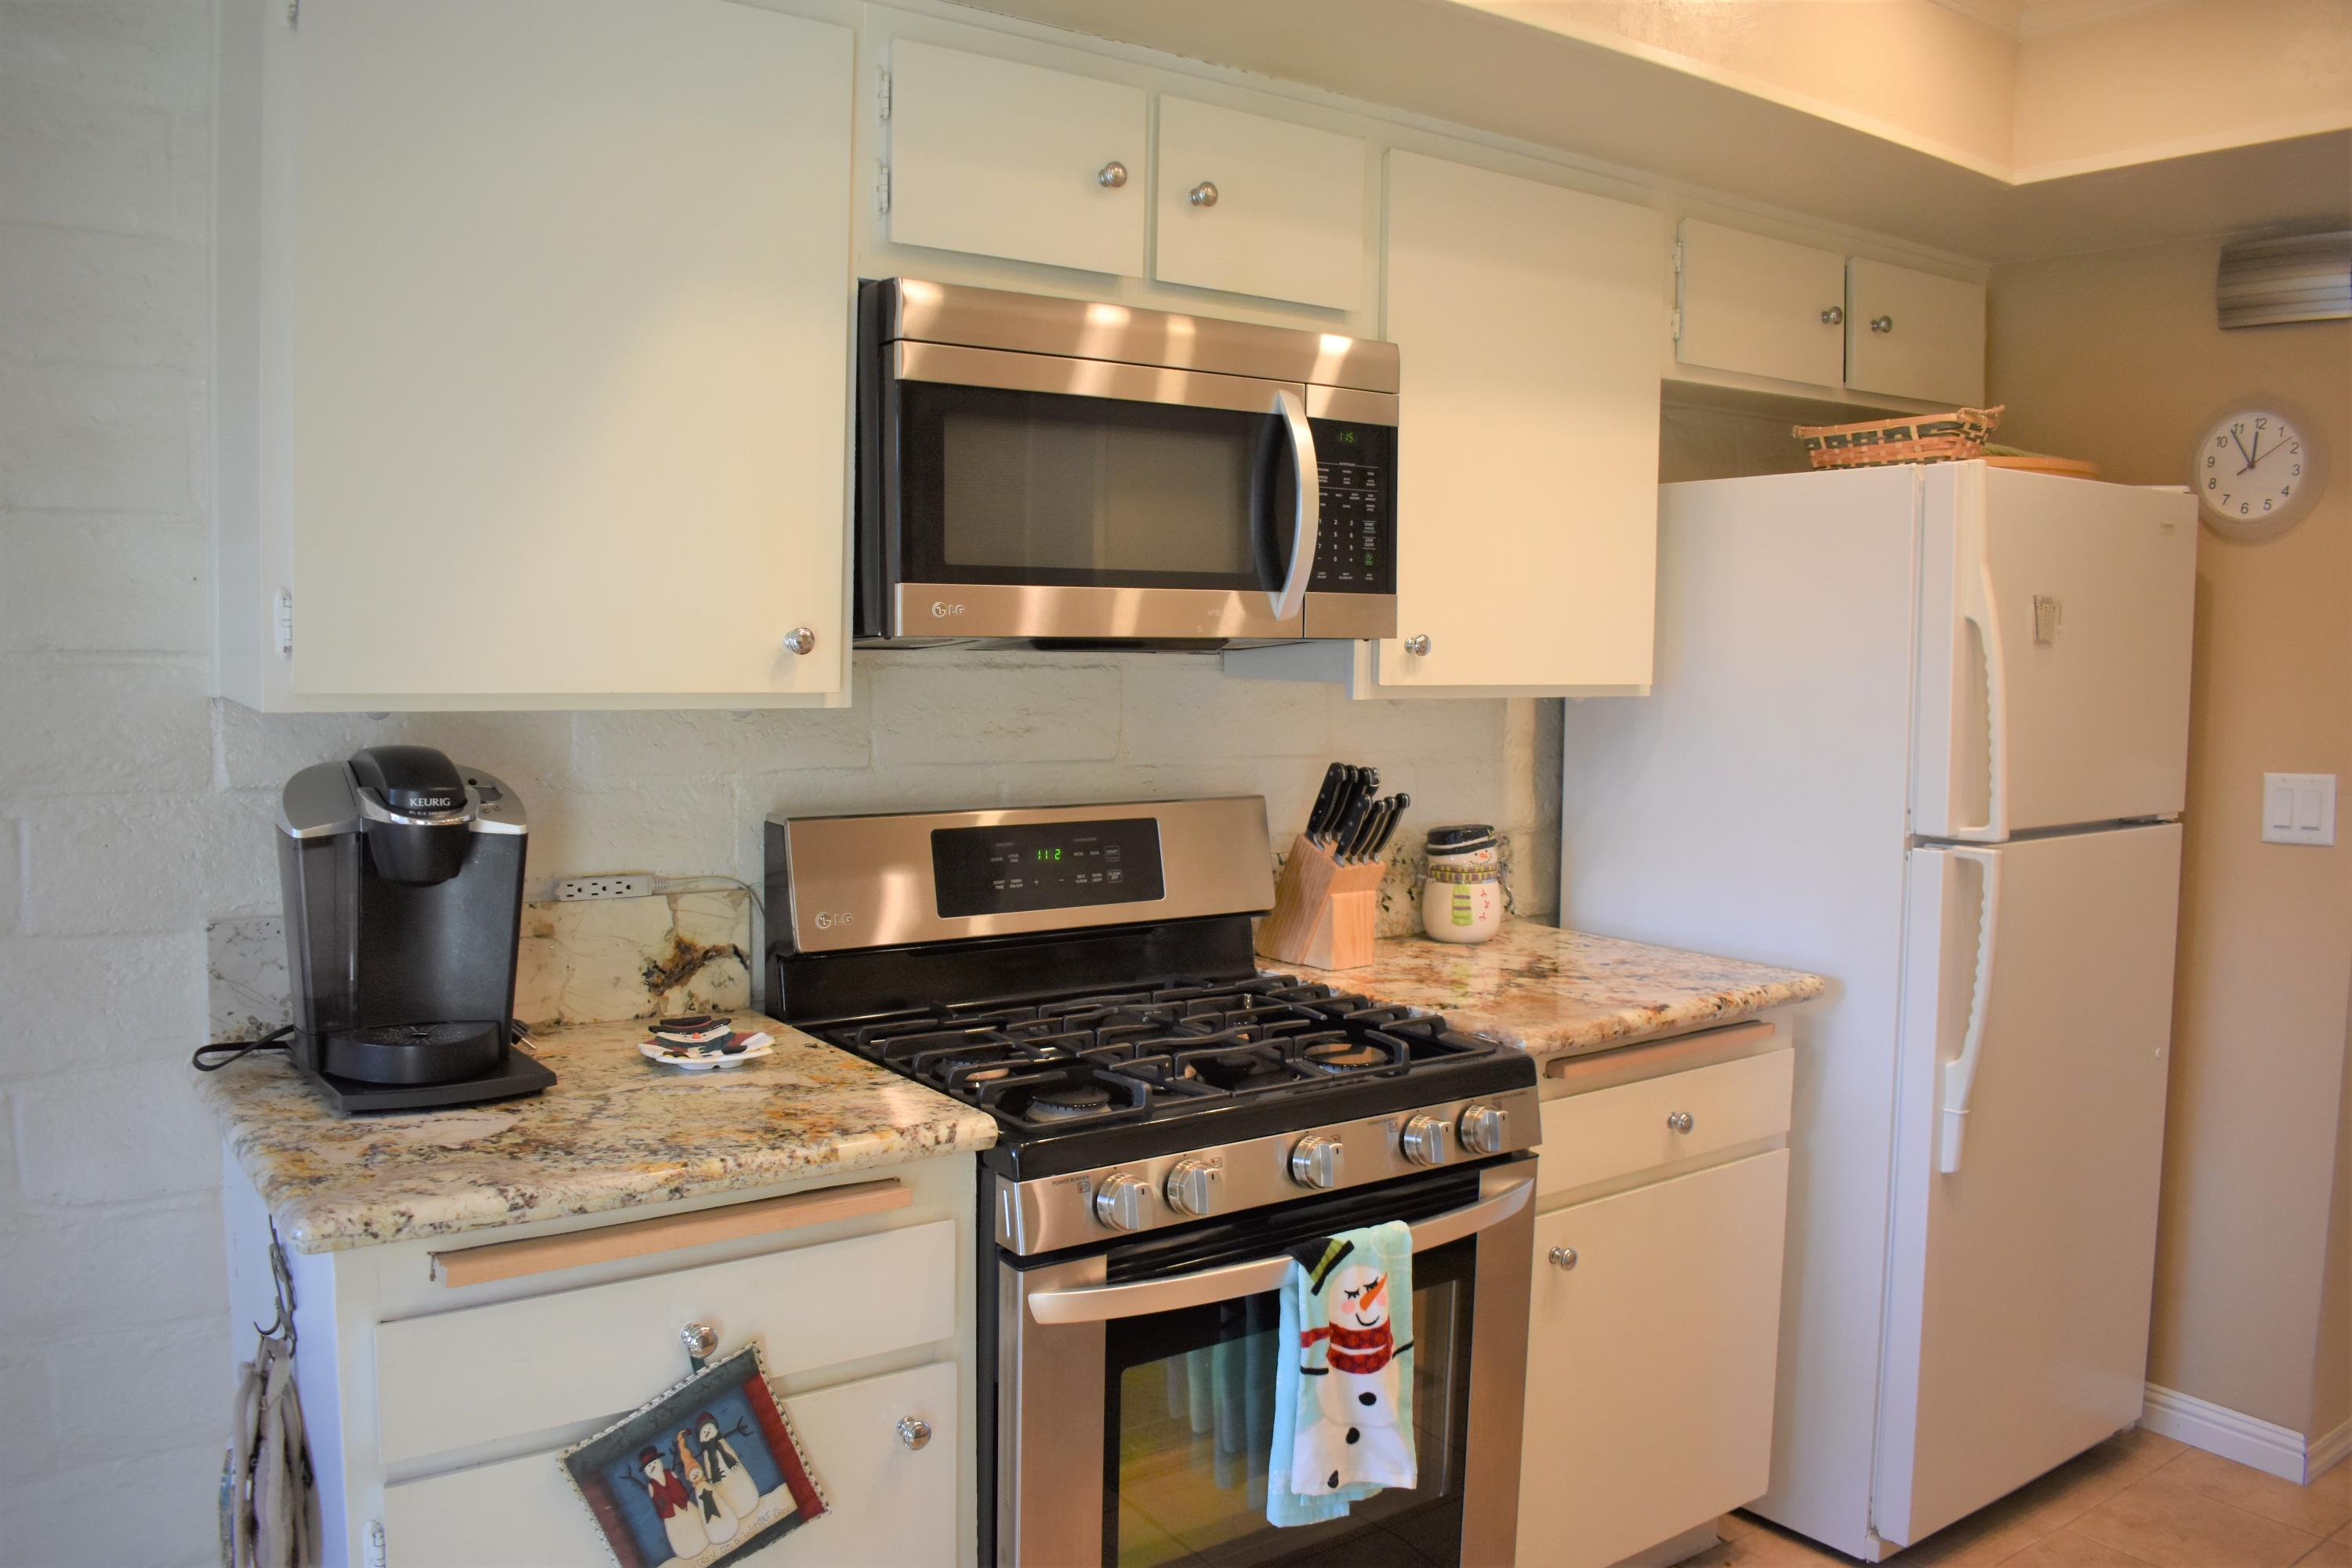 68435 Camino Jalan, Cathedral City, California 92234, 2 Bedrooms Bedrooms, ,3 BathroomsBathrooms,Residential,For Sale,68435 Camino Jalan,219043507